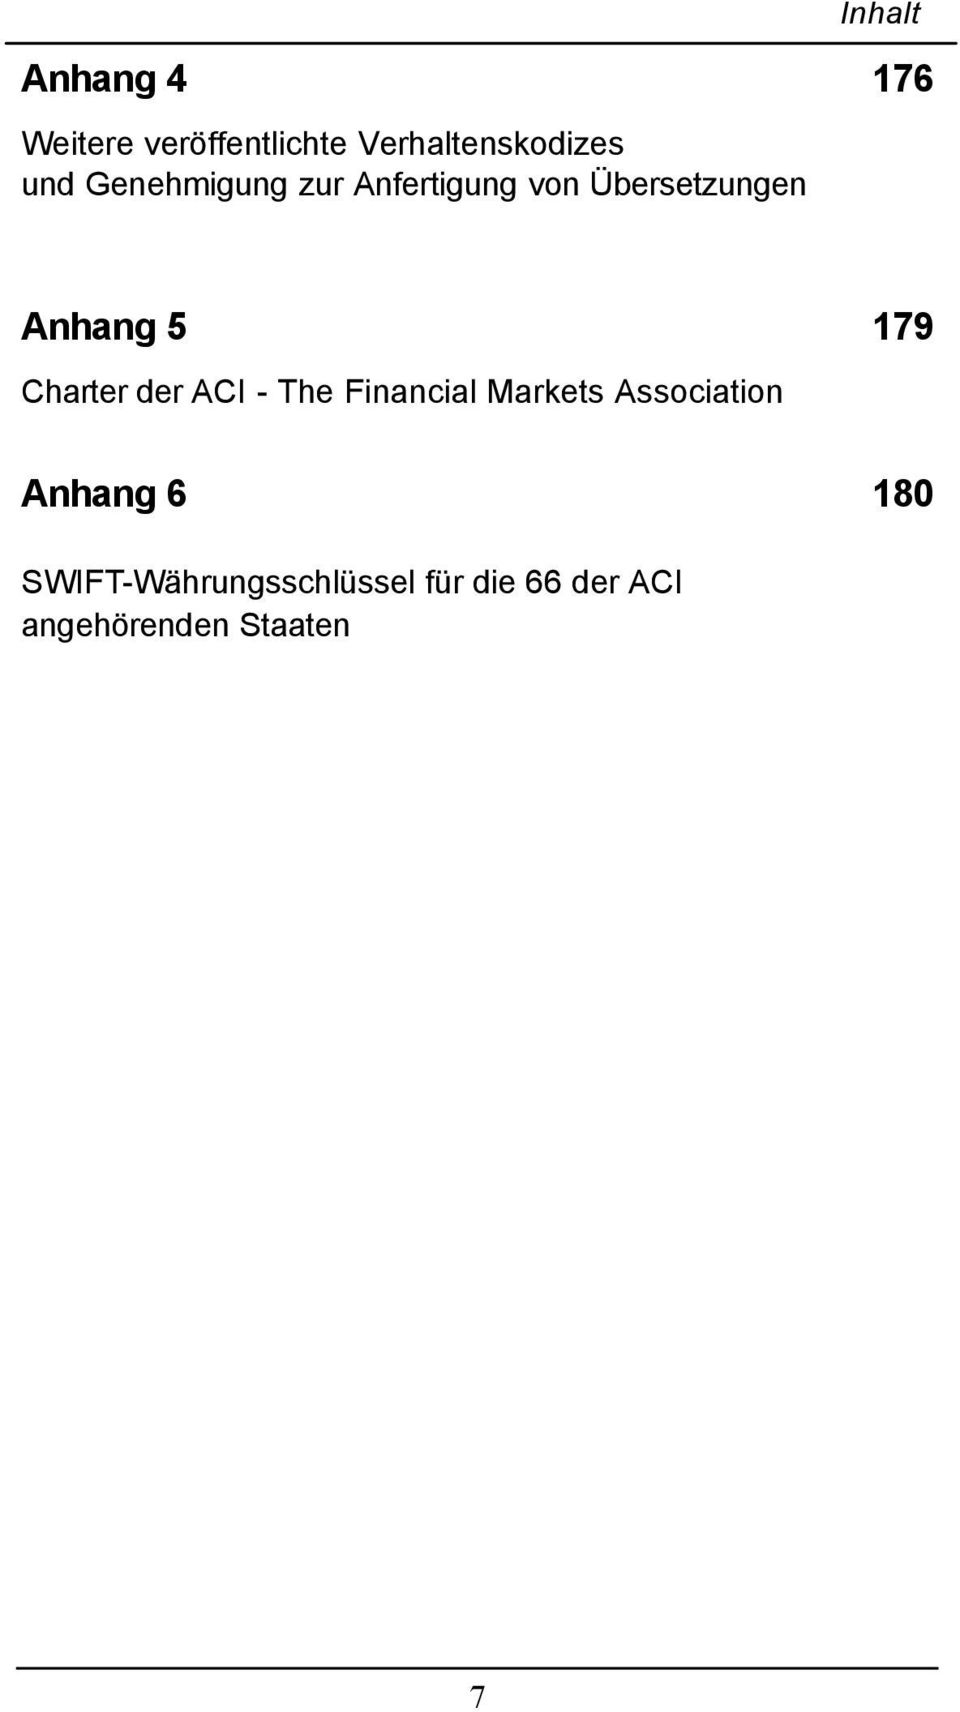 Charter der ACI - The Financial Markets Association Anhang 6